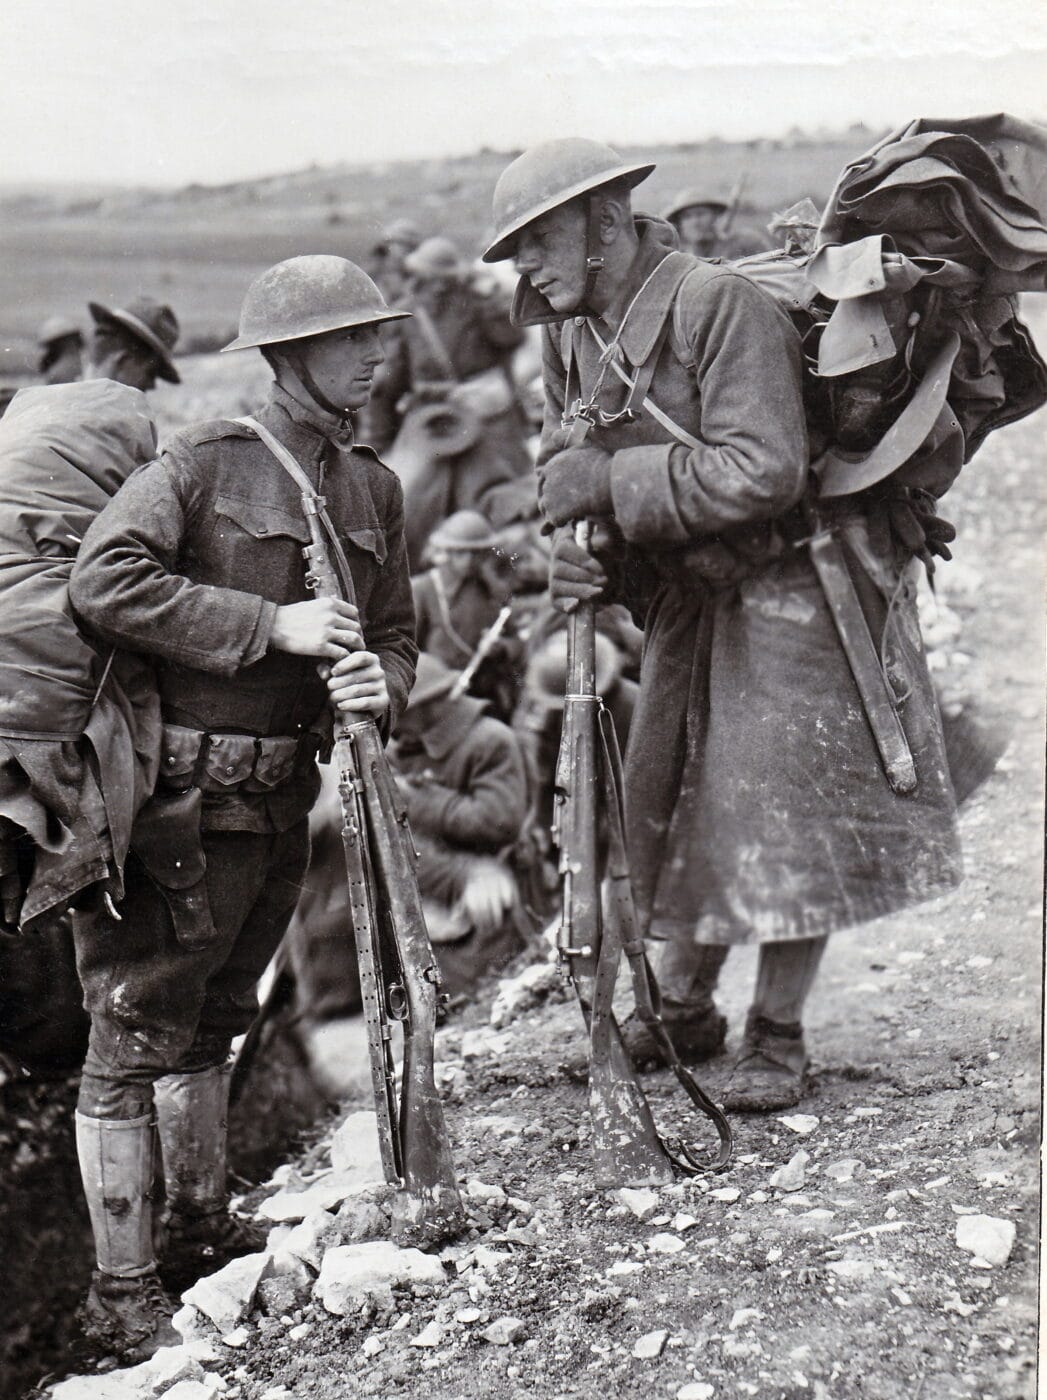 Men of the U.S. 28th Division in Donrecourt, France during WWI with M1903 rifles